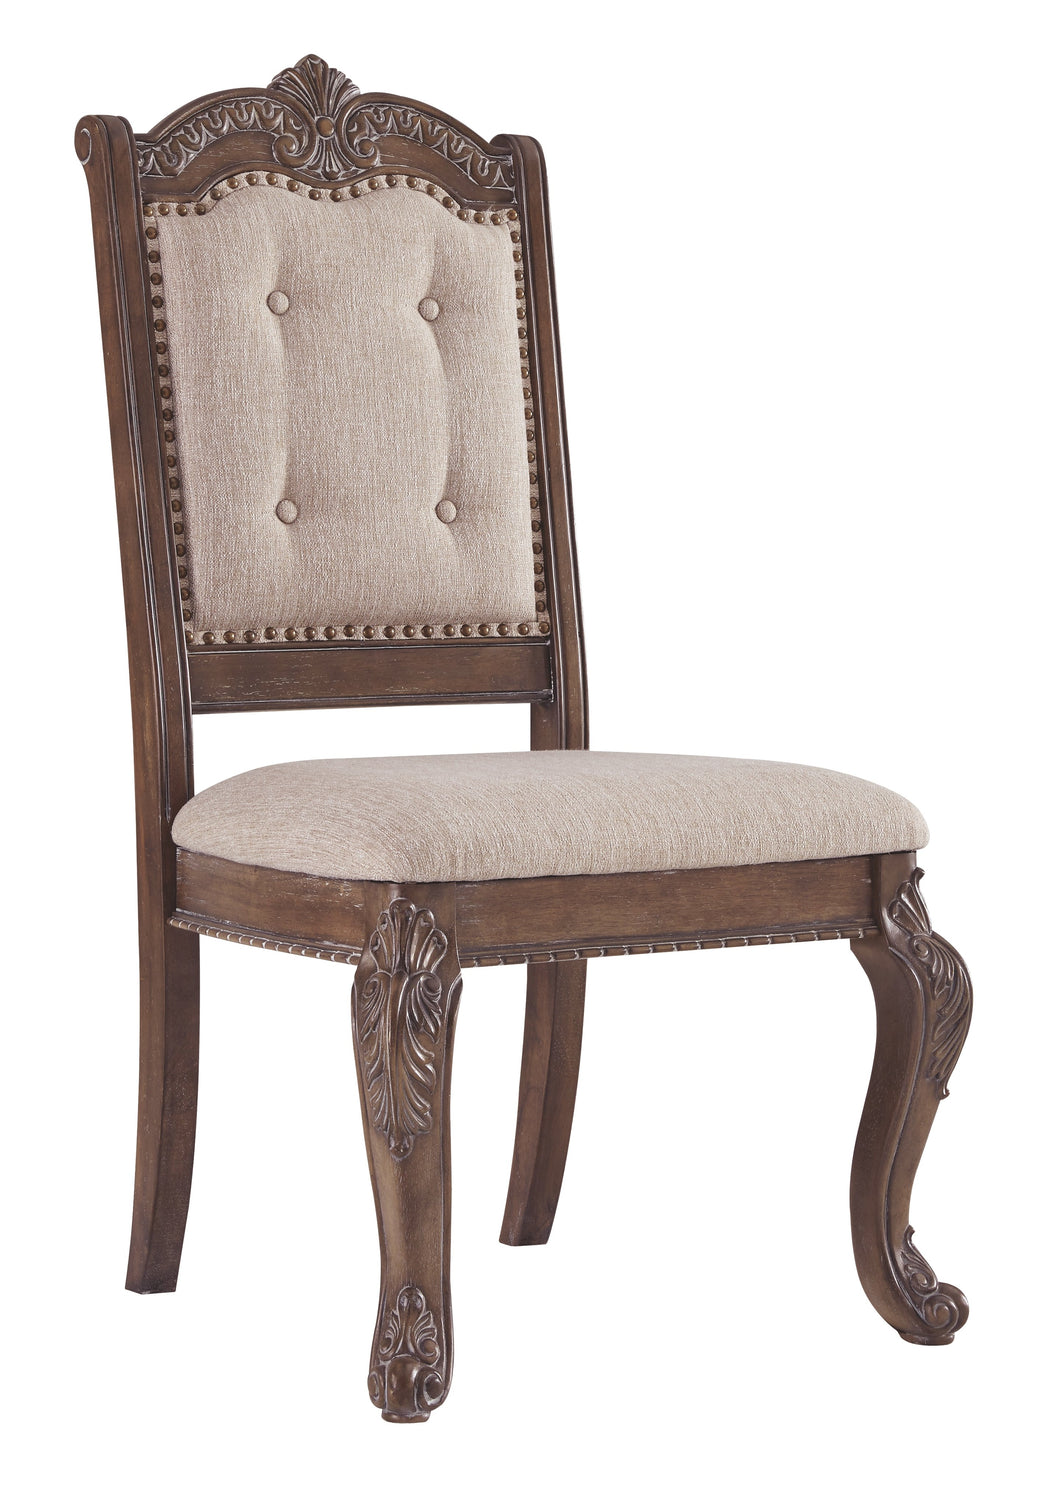 Charmond Signature Design by Ashley Dining Chair